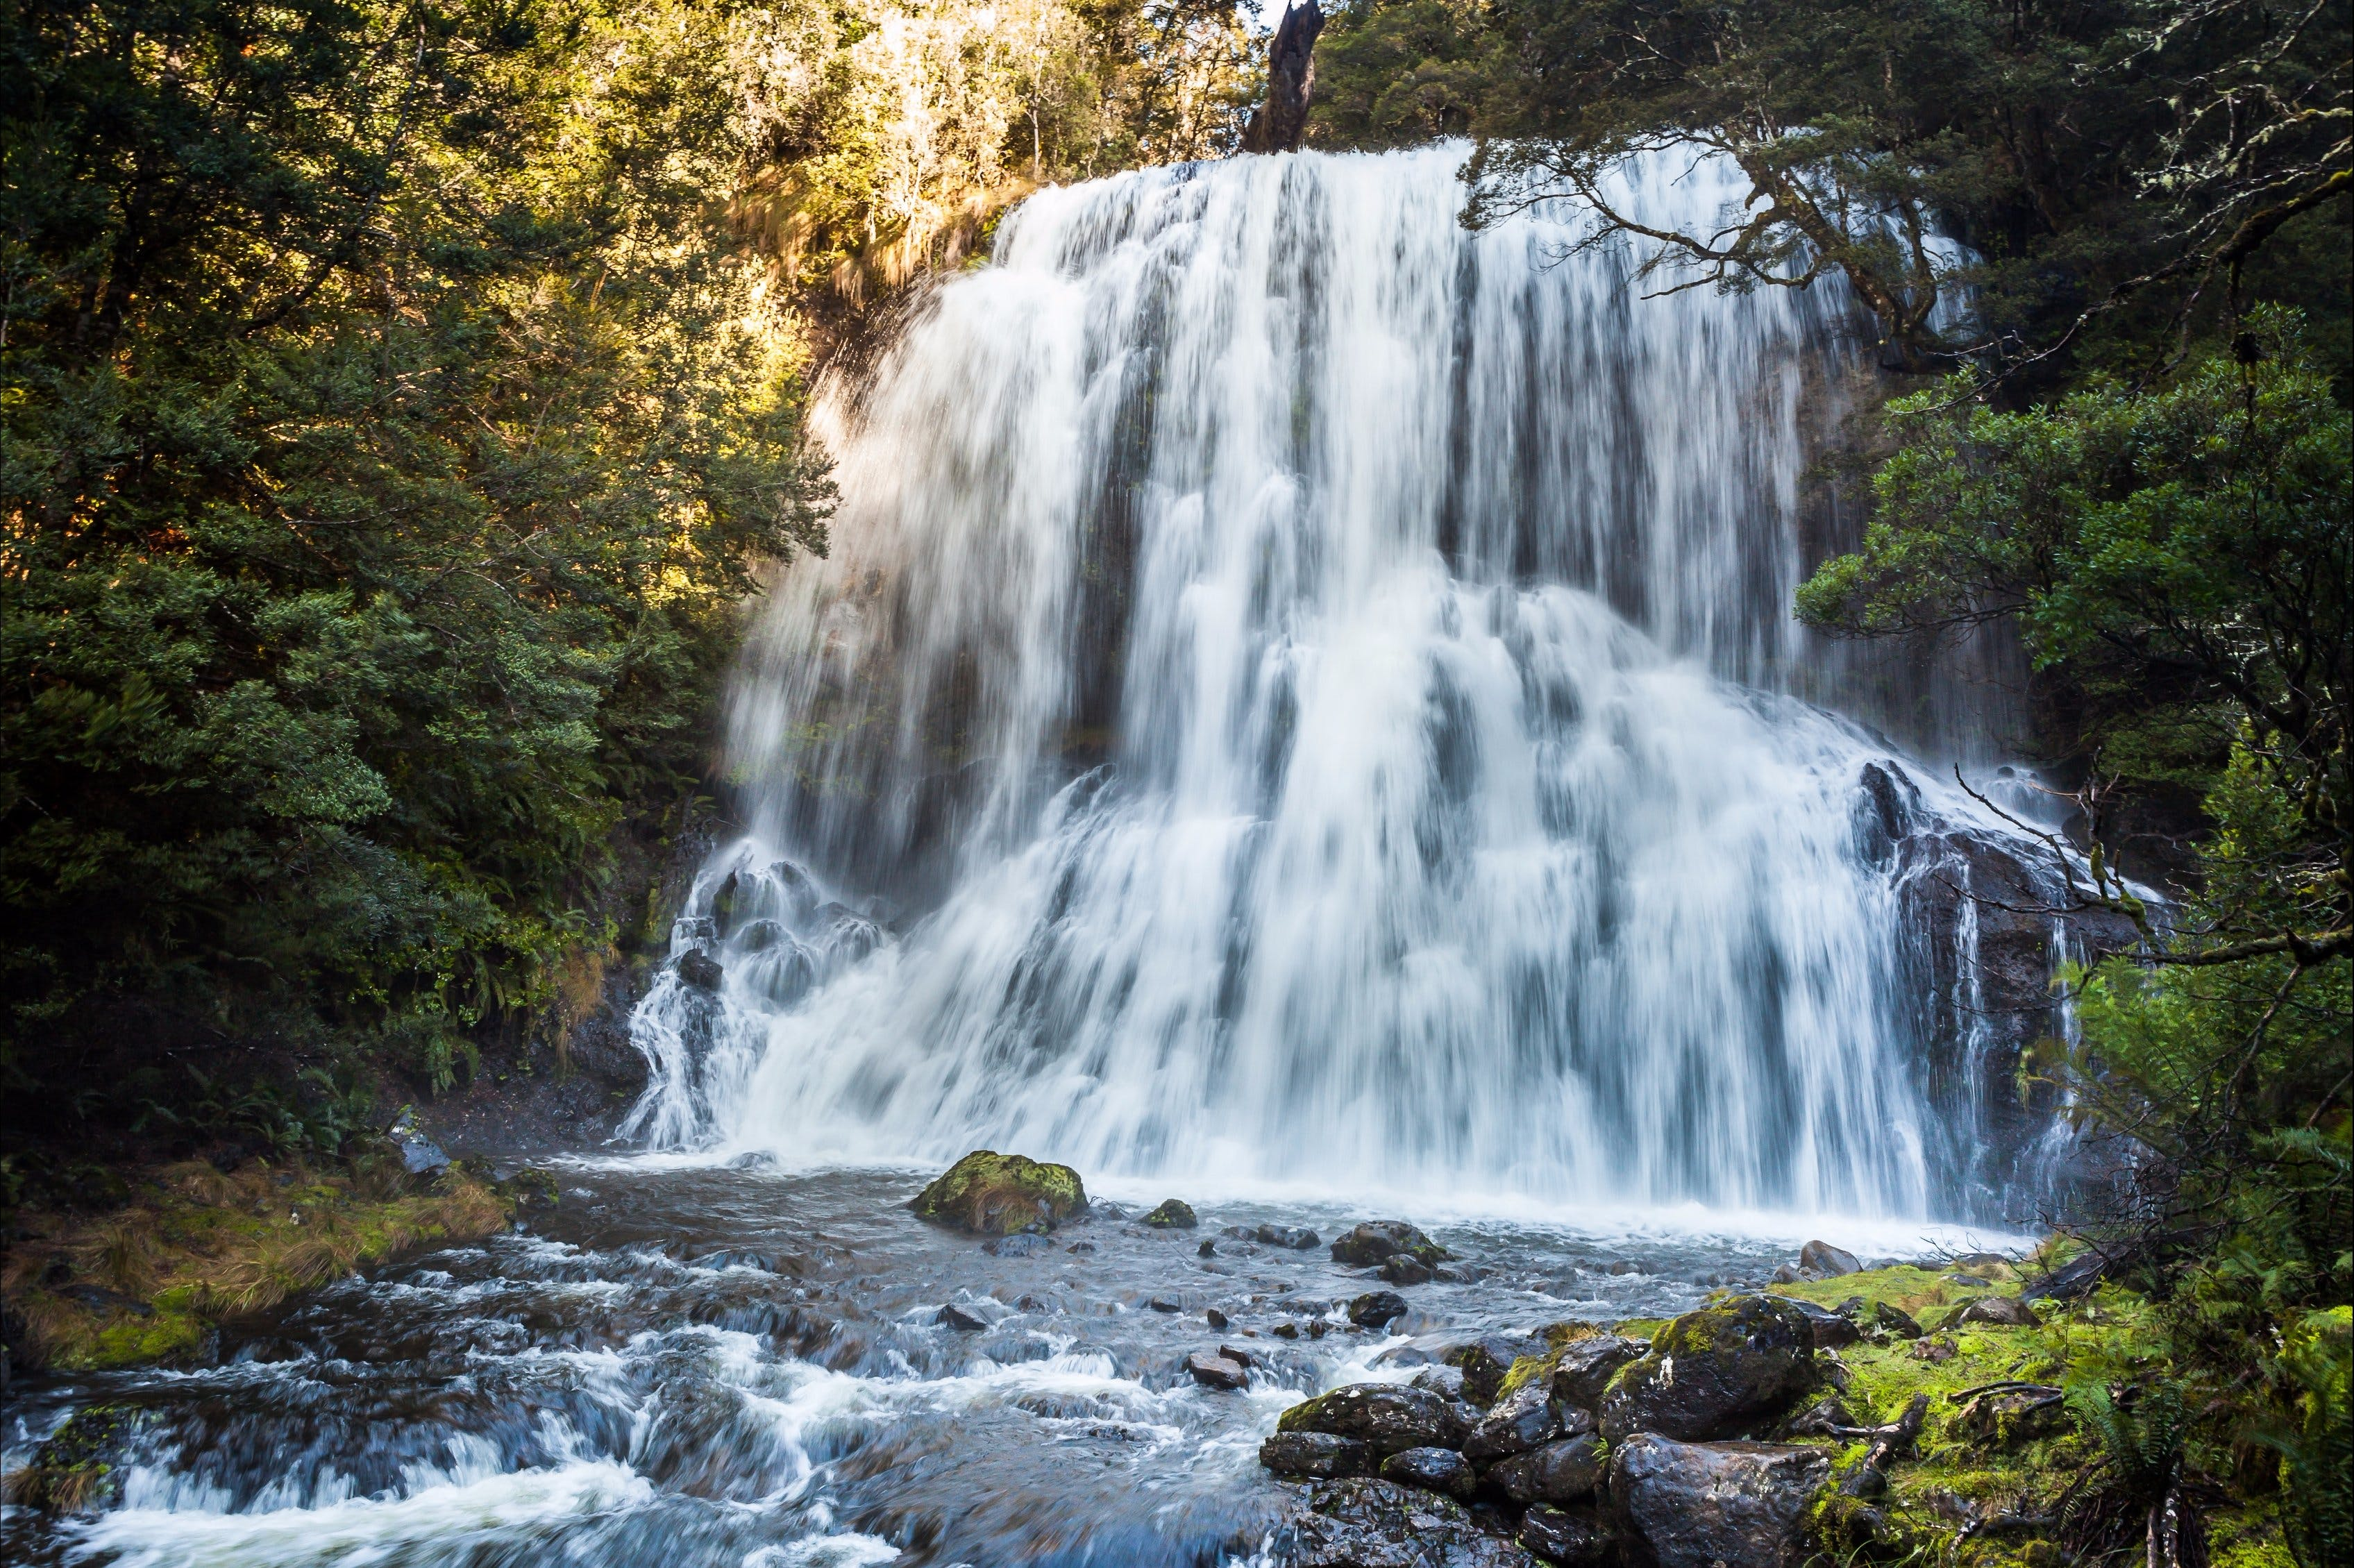 Bridal Veil Champagne and No Name Falls - Accommodation Australia